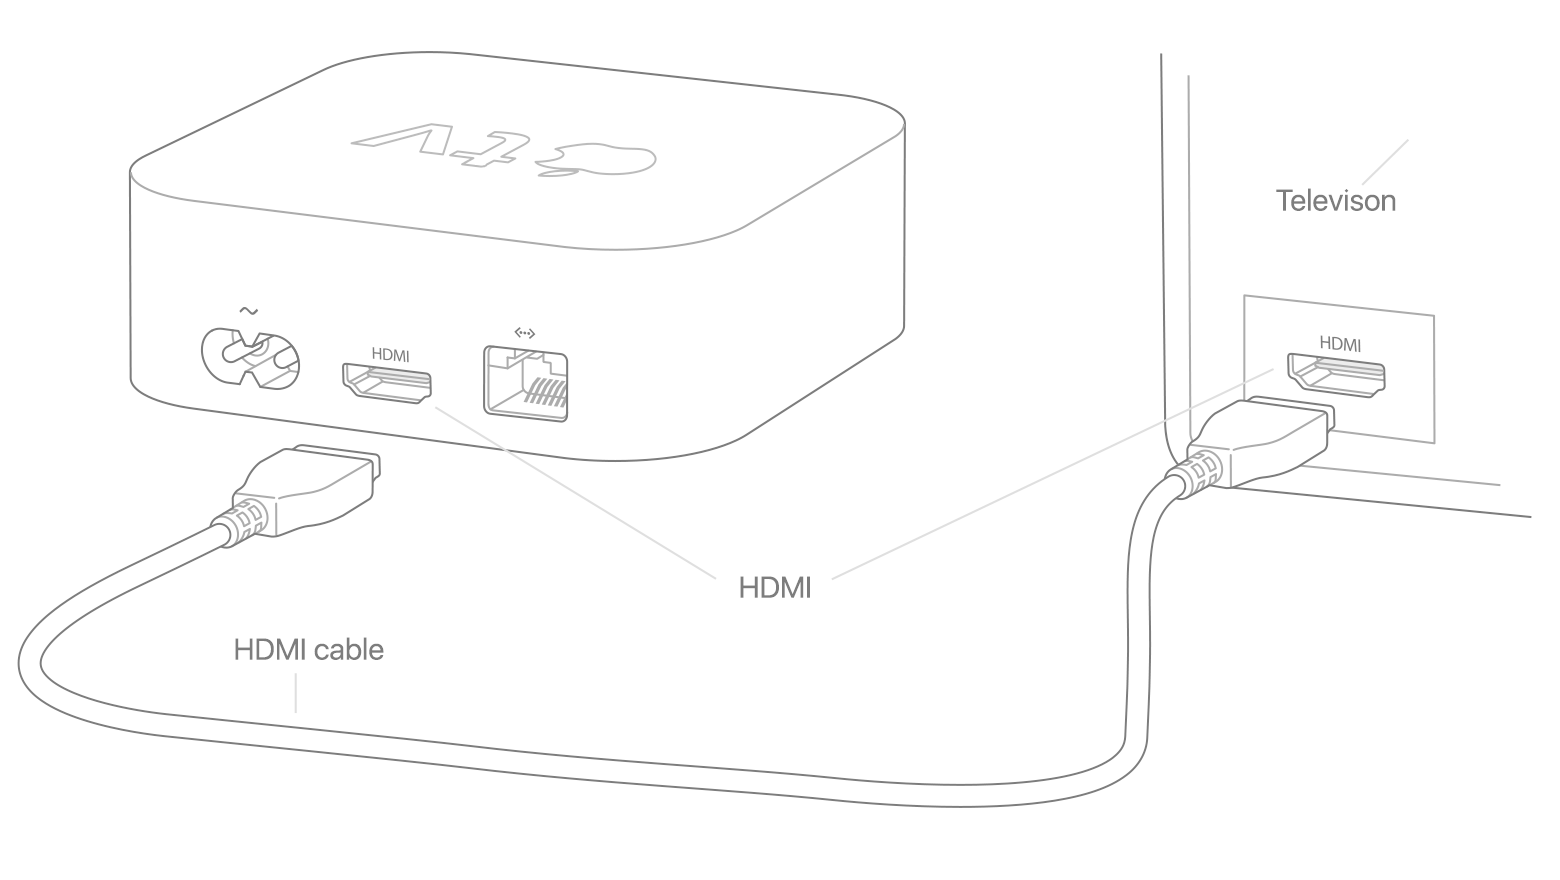 HDMI cable being connected to the Apple TV and the rear of a television. Illustration.